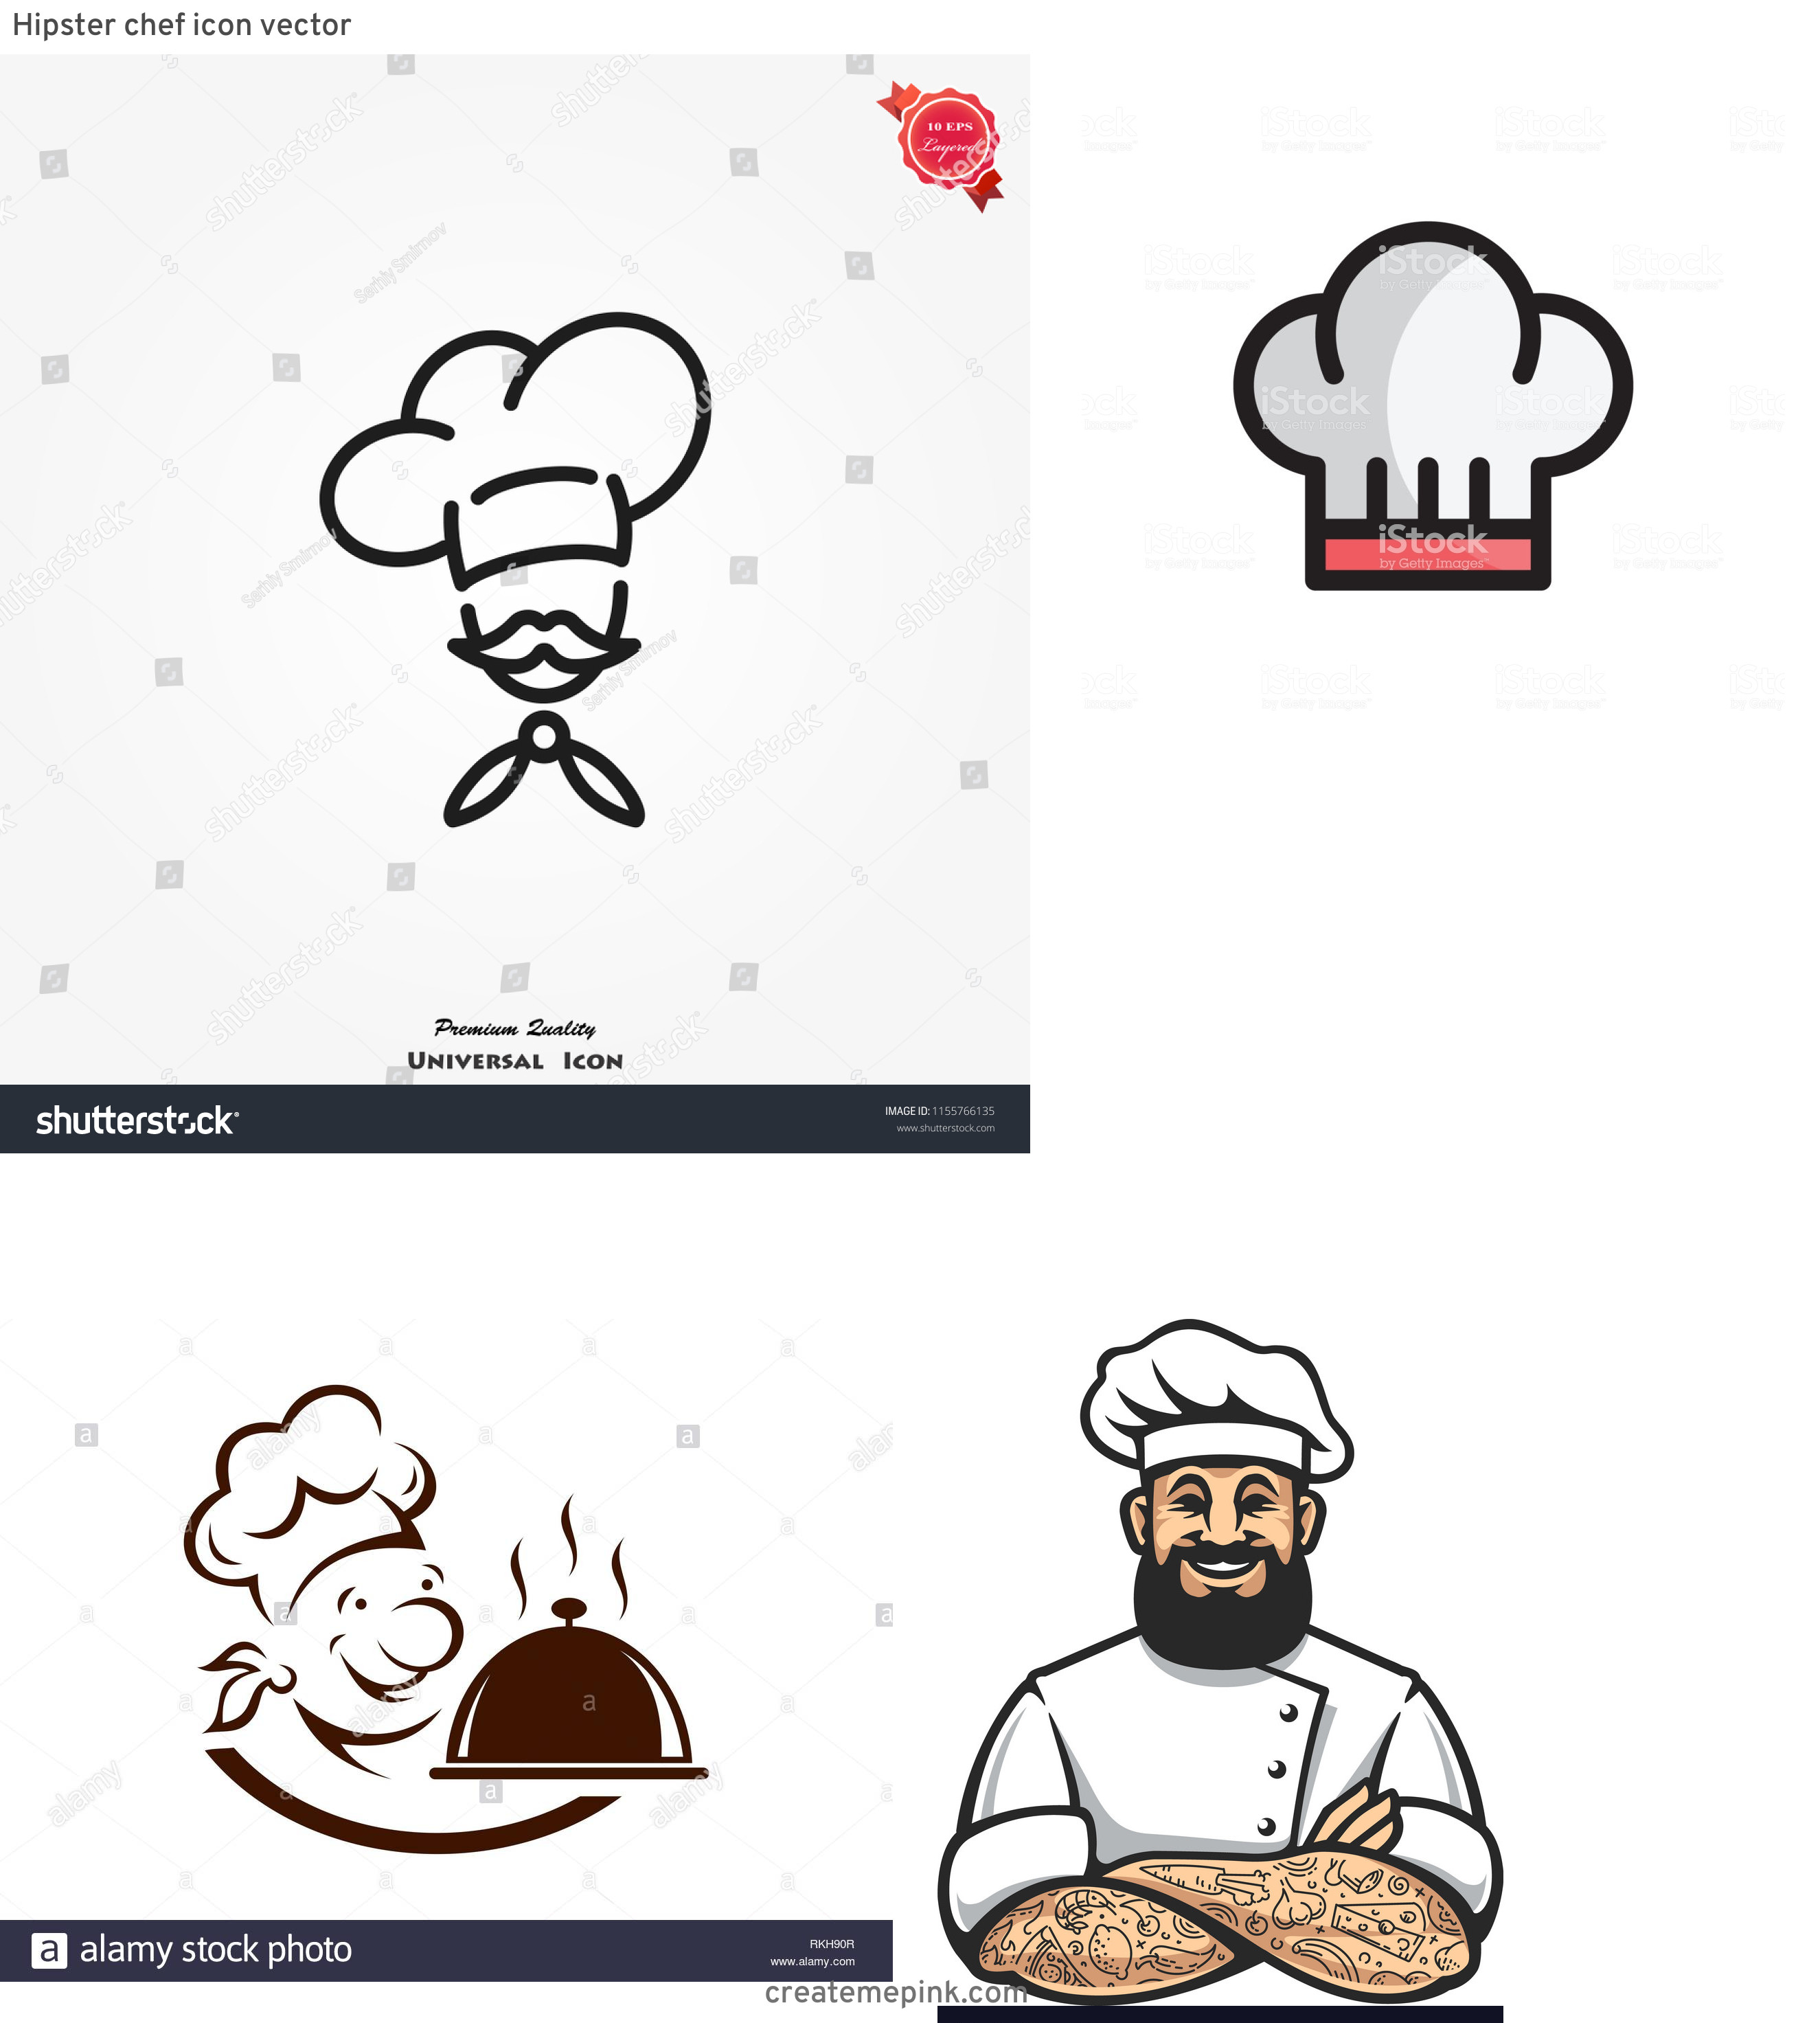 Chef Icon Vector: Hipster Chef Icon Vector